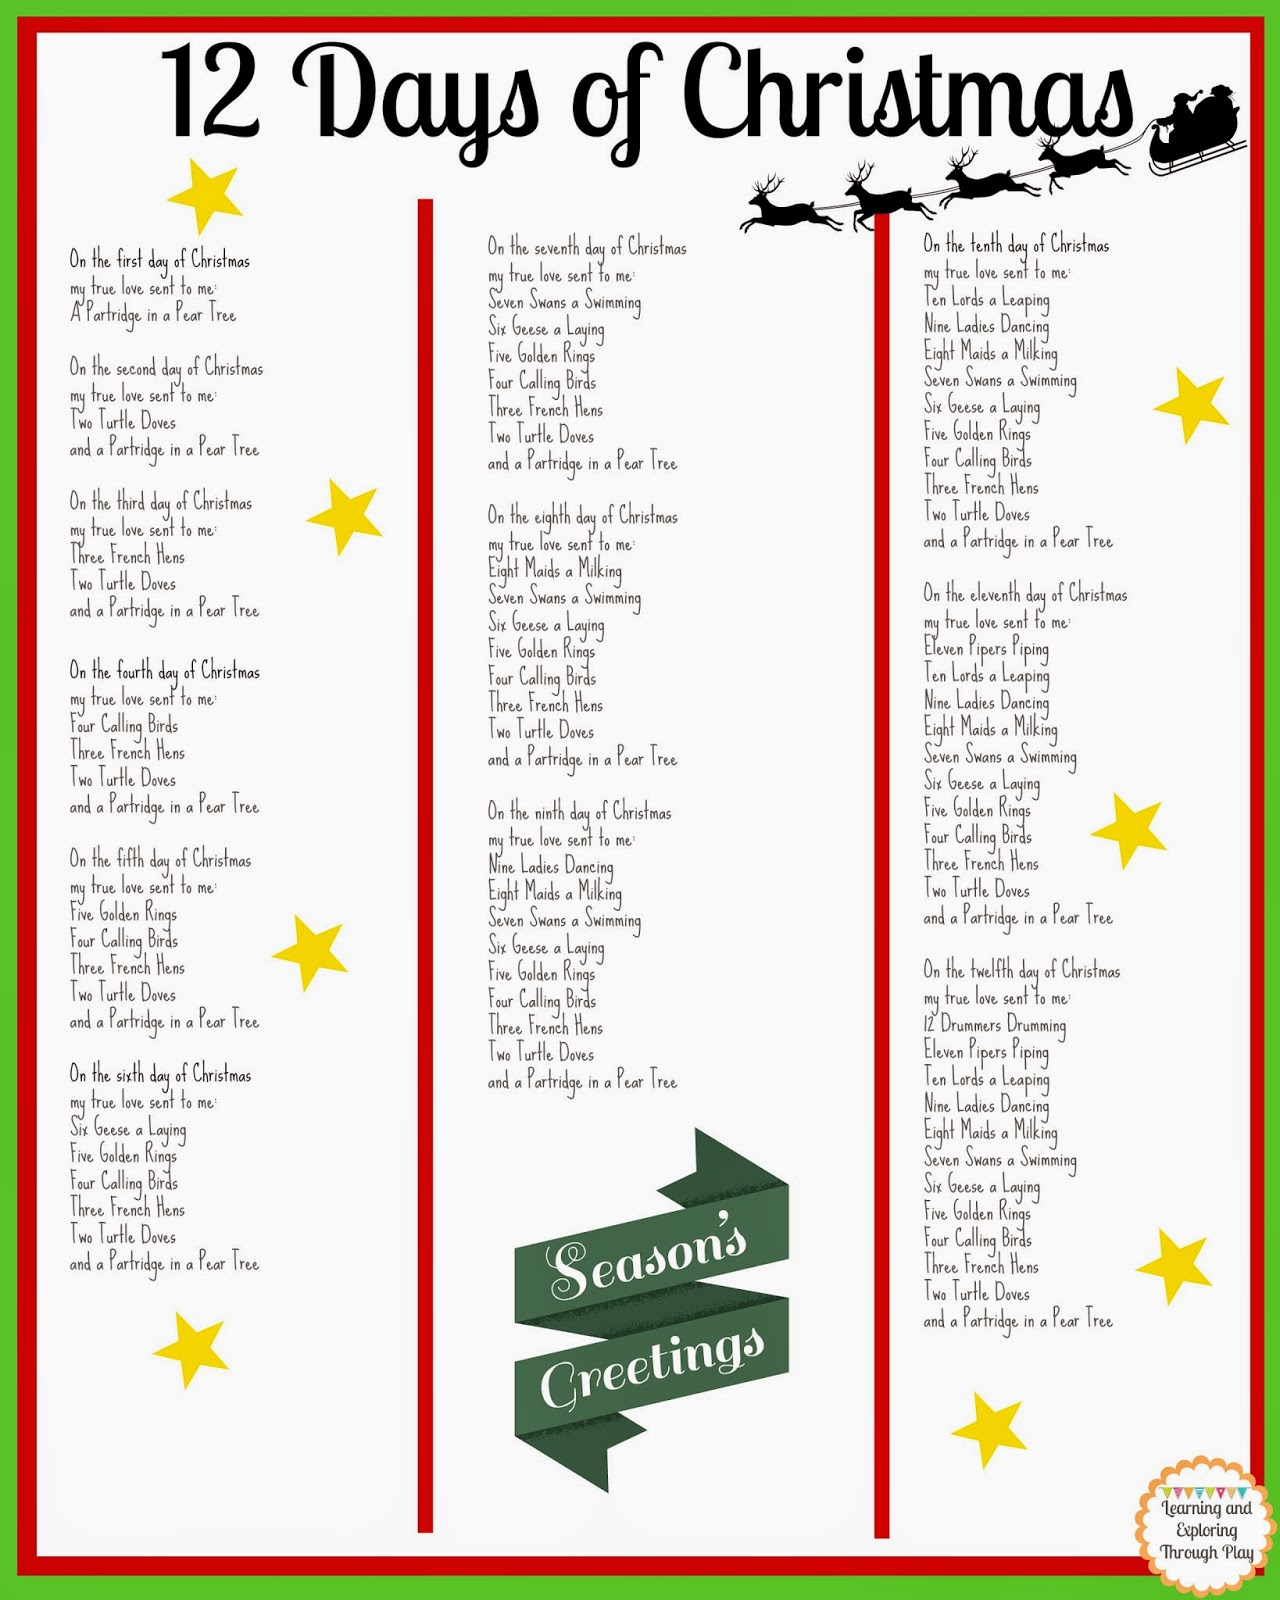 Gallery For gt; 12 Days Of Christmas Lyrics Printable - Christmas ...